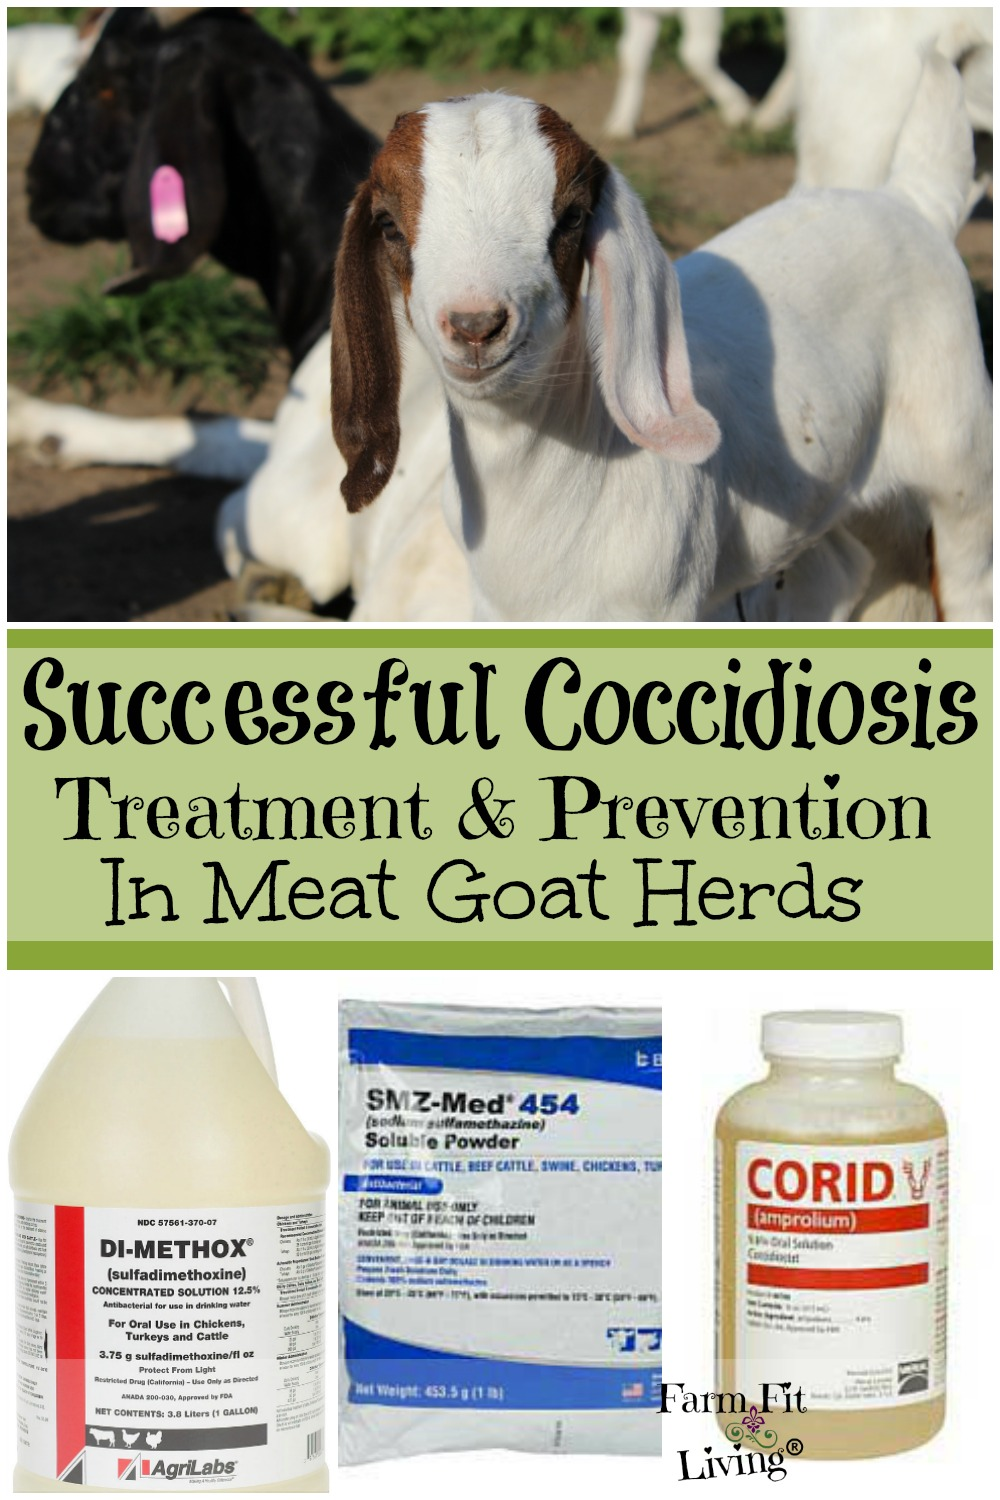 Successful Coccidiosis Treatment and Prevention in Meat Goat